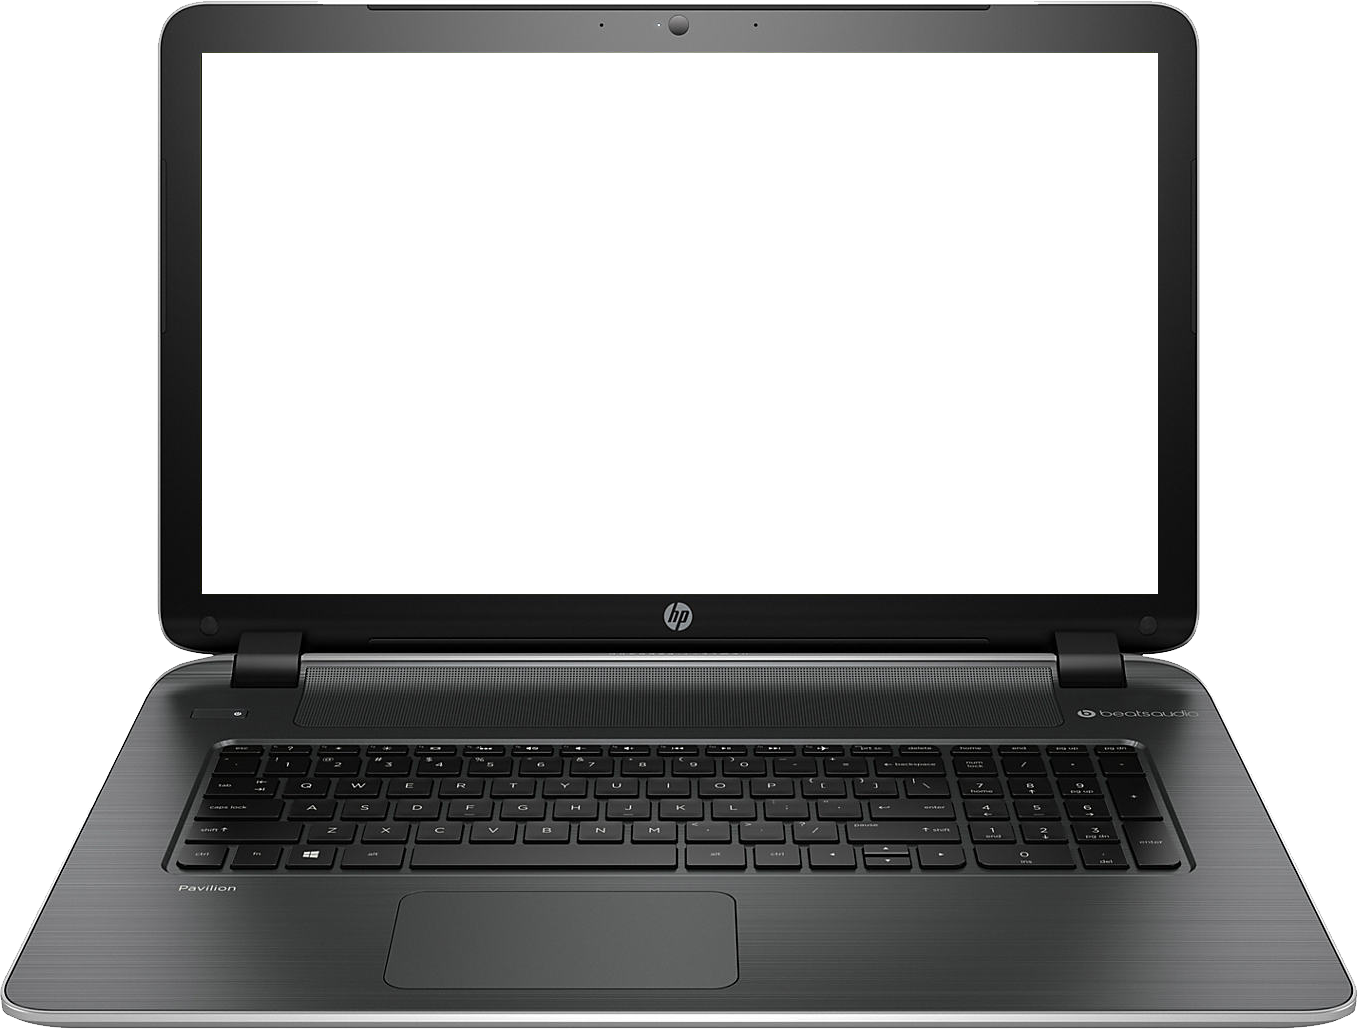 Notebook png. Laptops images image laptop